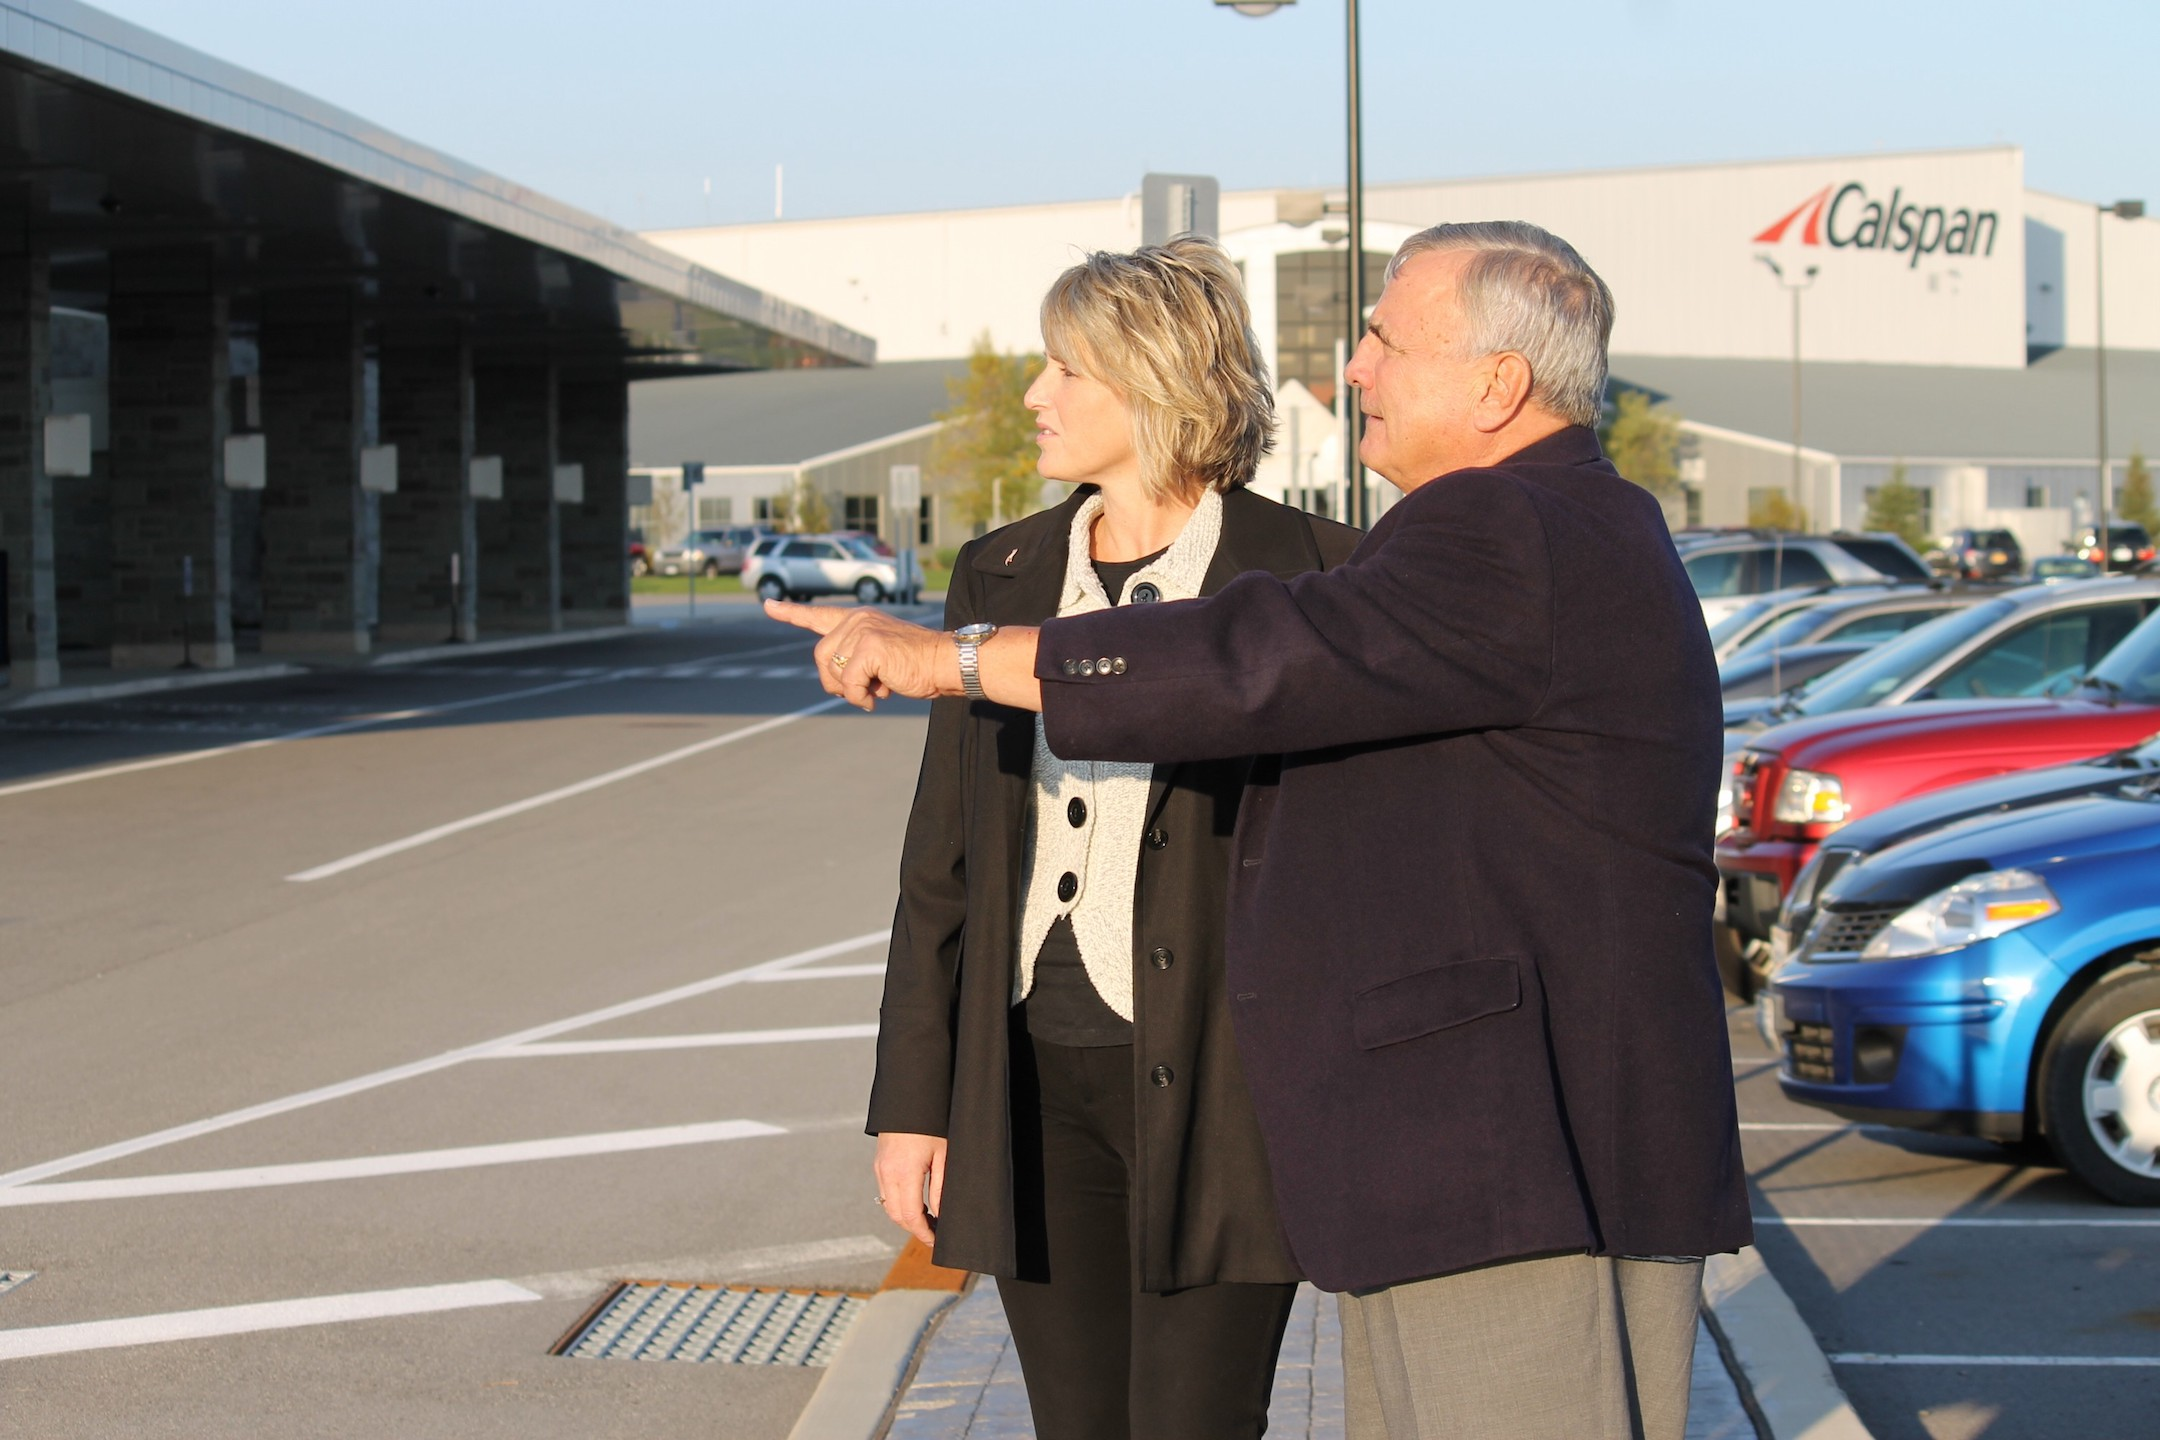 Niagara County Legislature Economic Development Committee Chairwoman Kathryn L. Lance and Niagara County Industrial Development Agency board member William L. Ross discuss development opportunities at the Niagara County International Airport in this undated file photo.